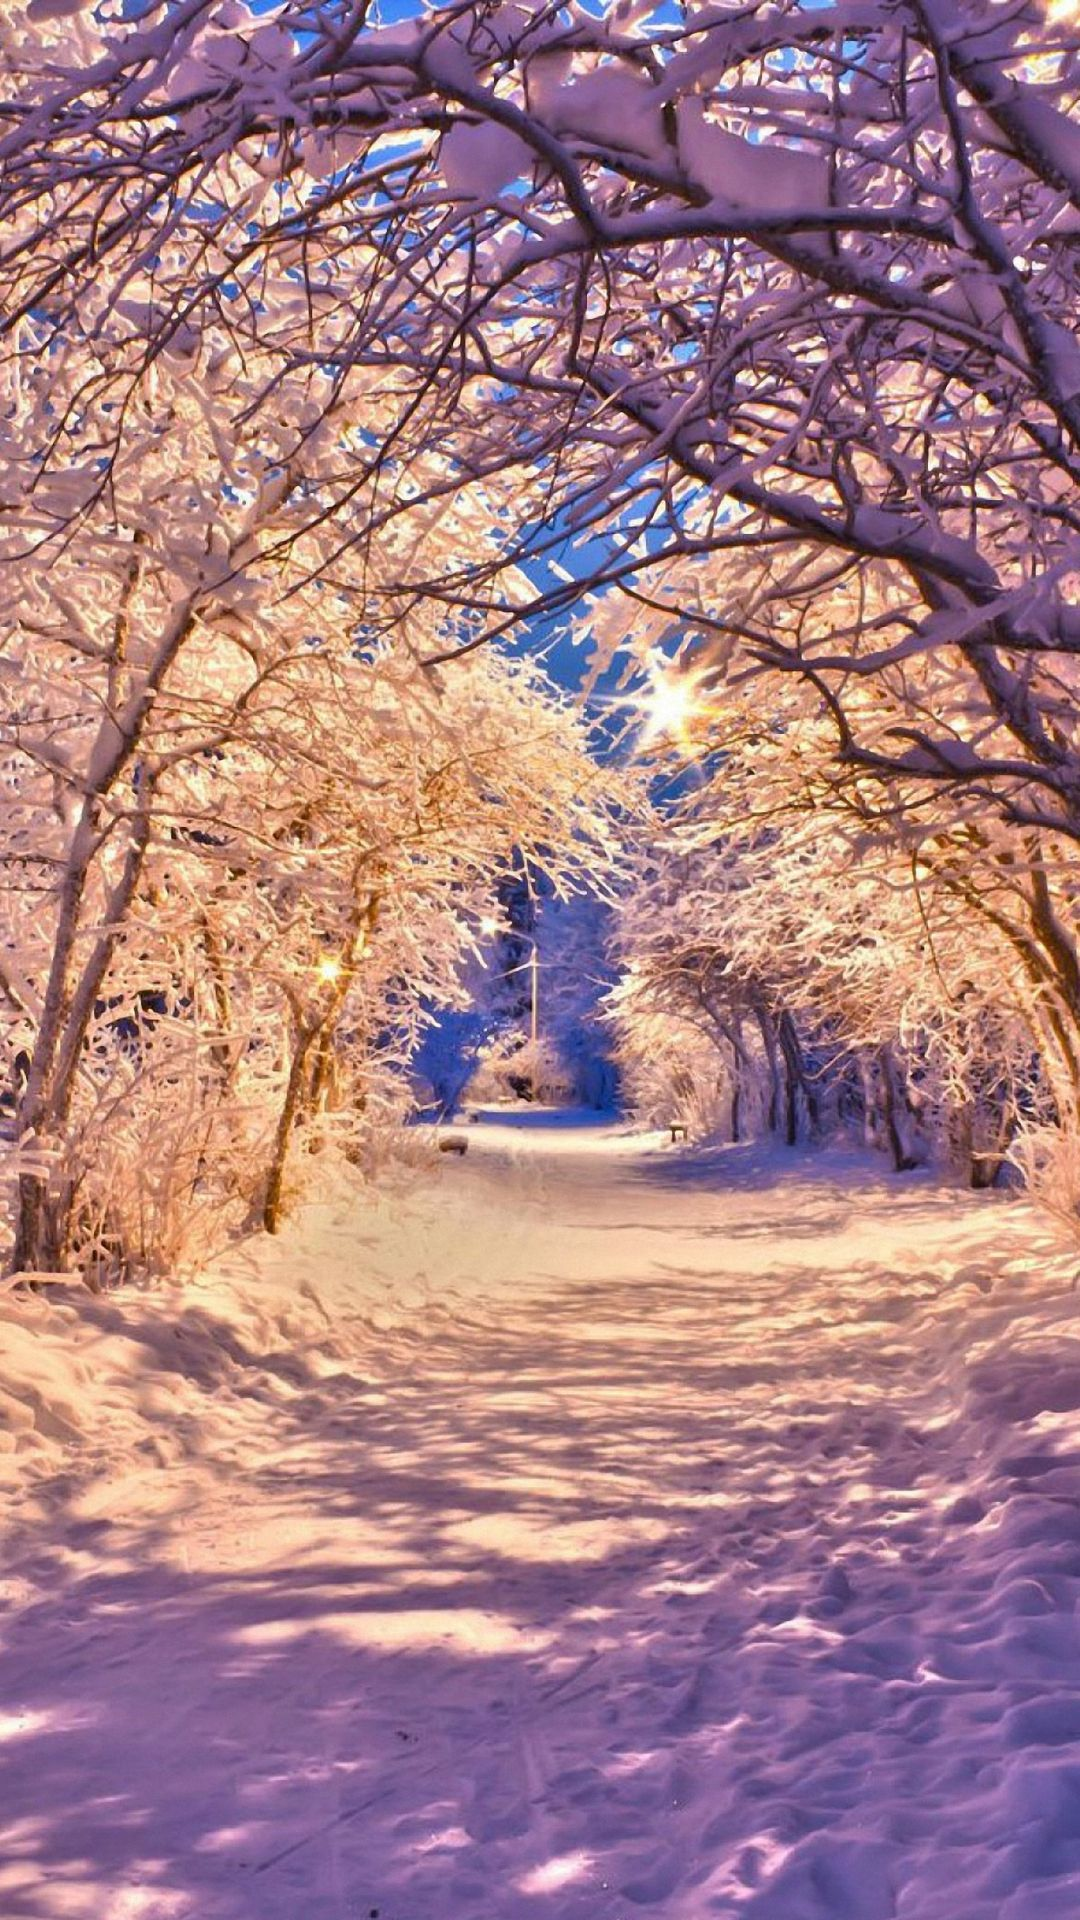 Winter trees dark night lights alone houses wallpaper in 2020 1080x1920